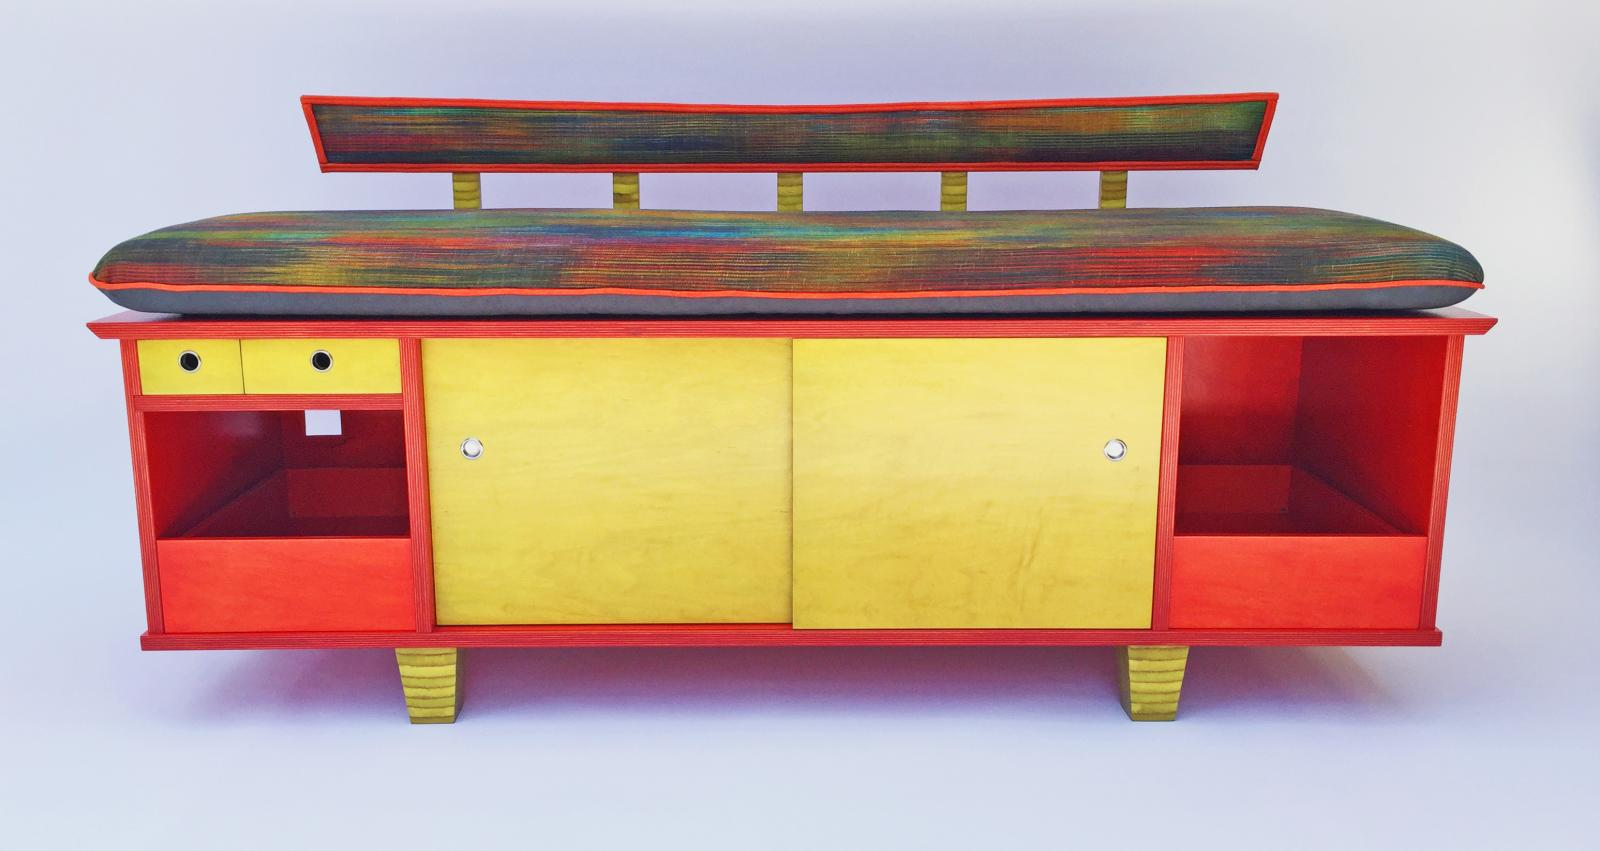 Fanciful furniture contributes to the Retro style living space